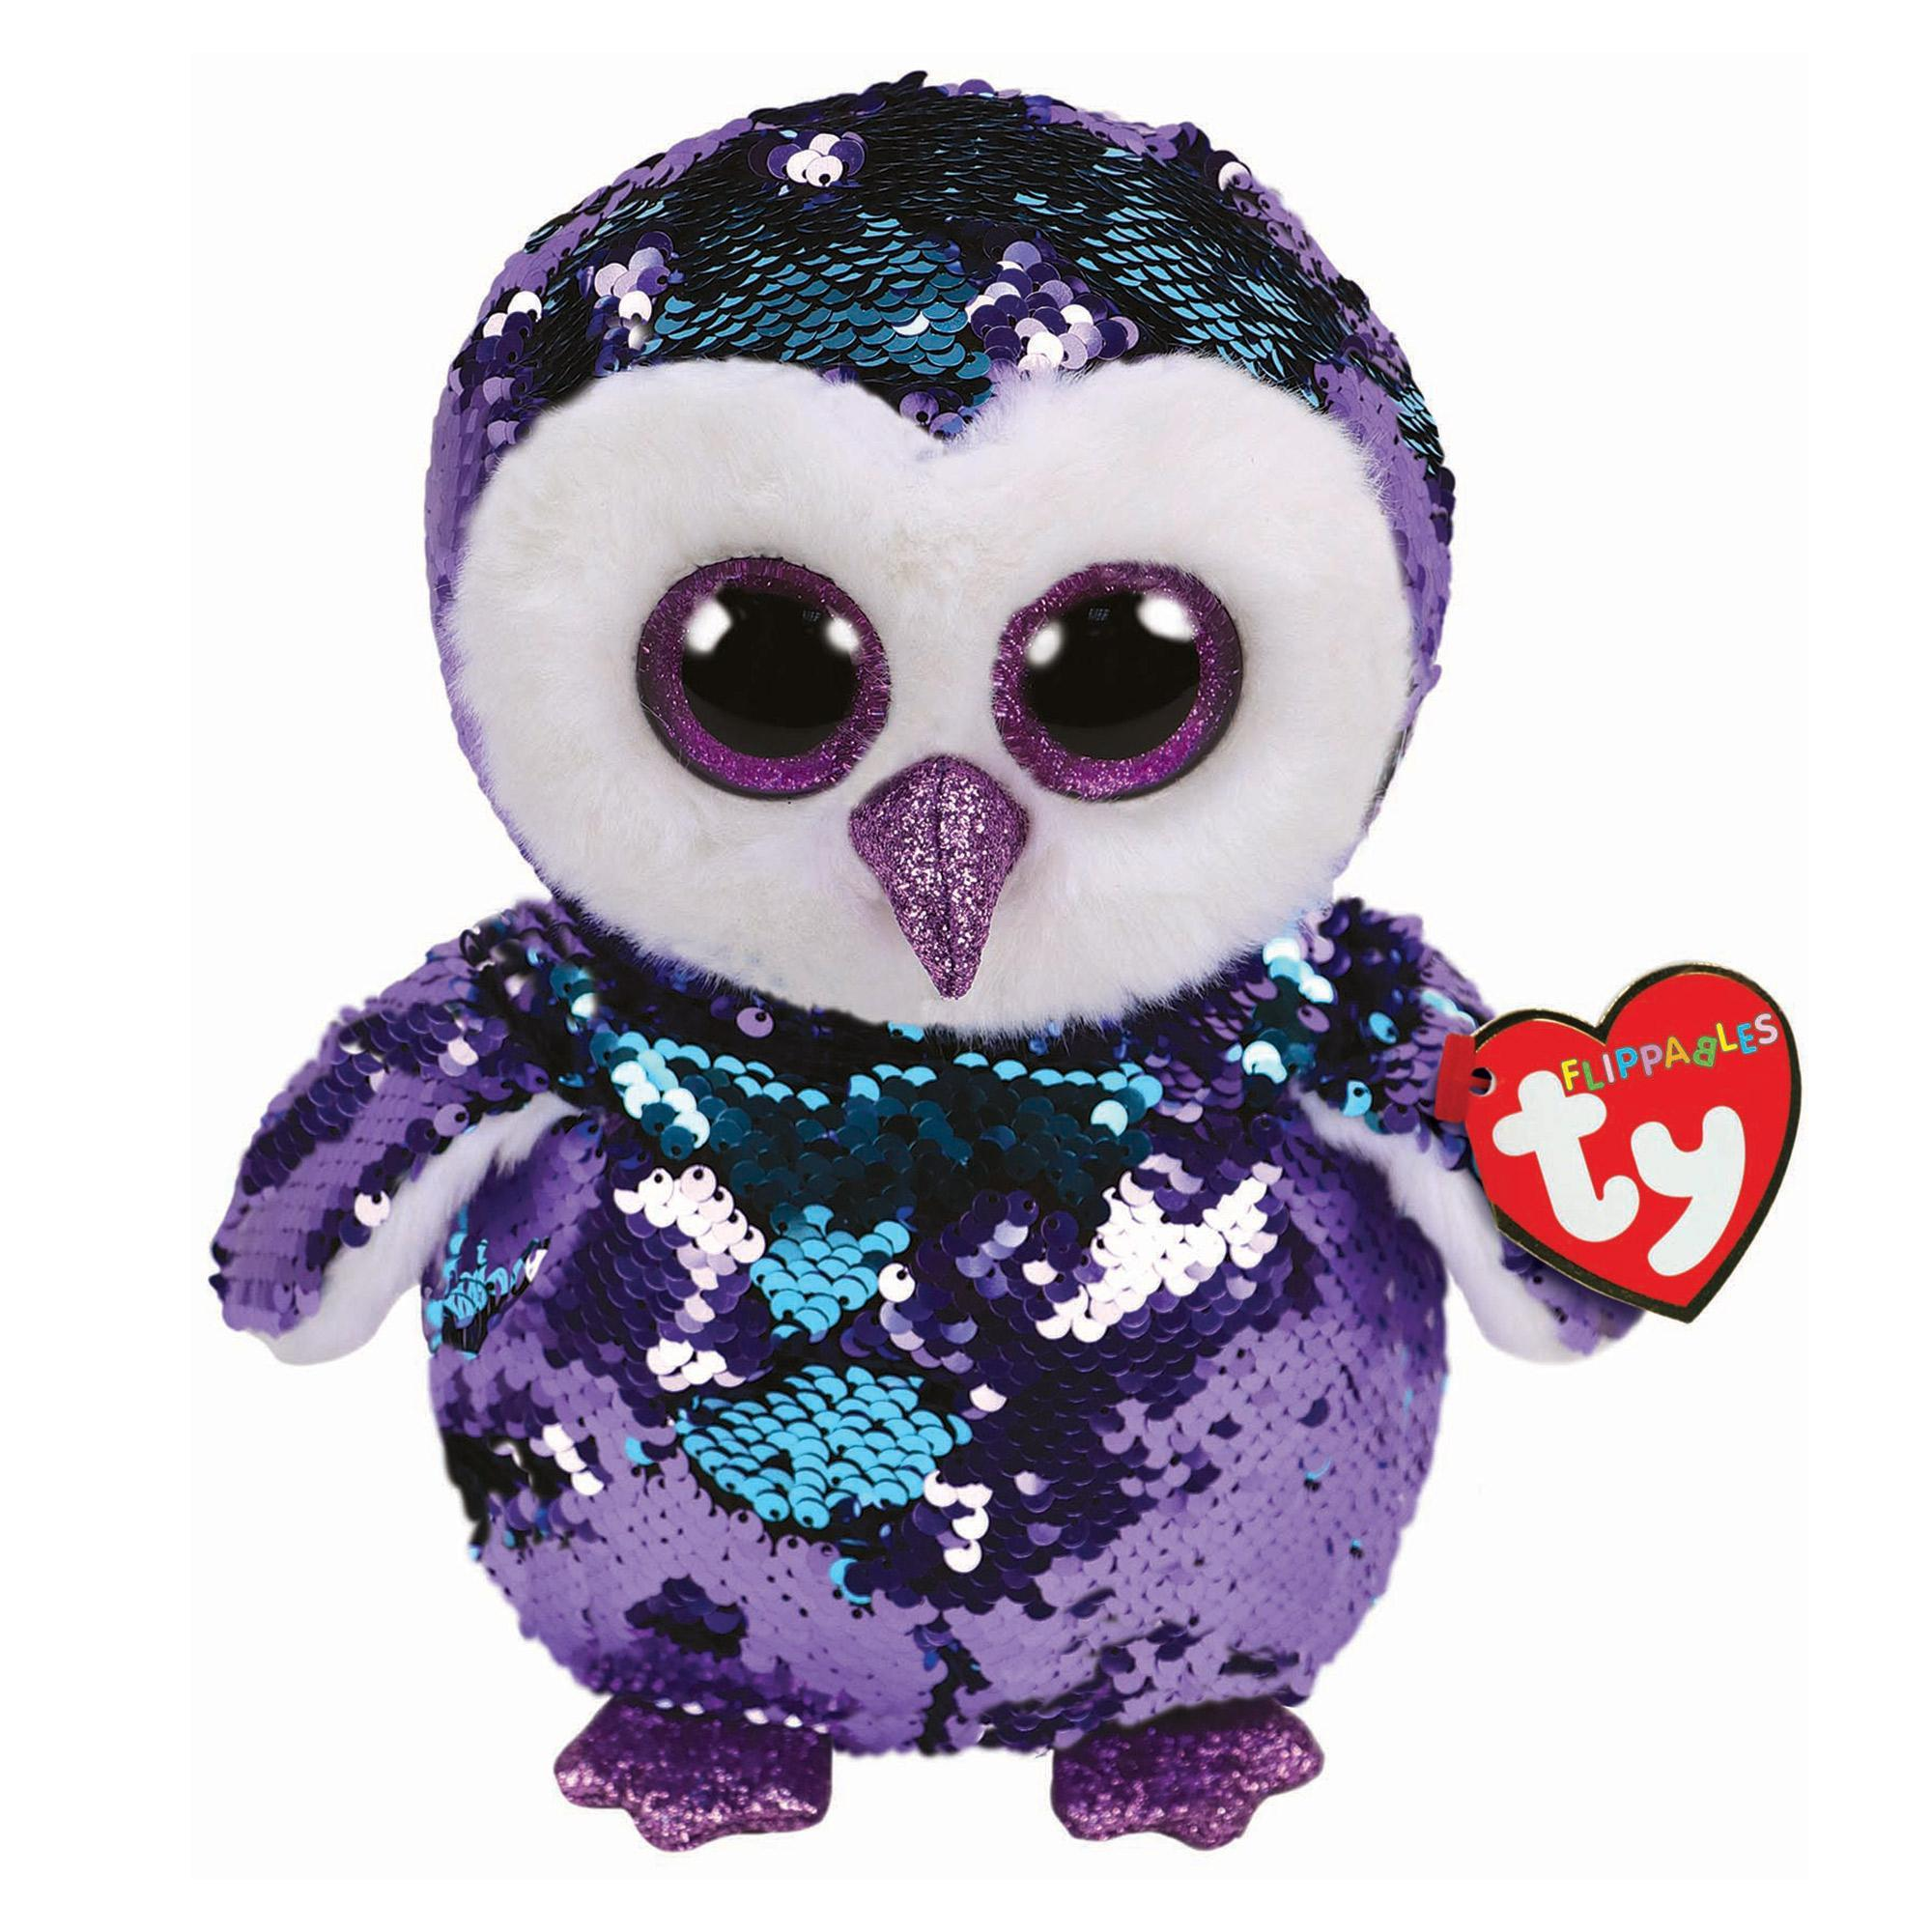 Beanie Boo Sequins - Moonlight Owl-Yarrawonga Fun and Games.